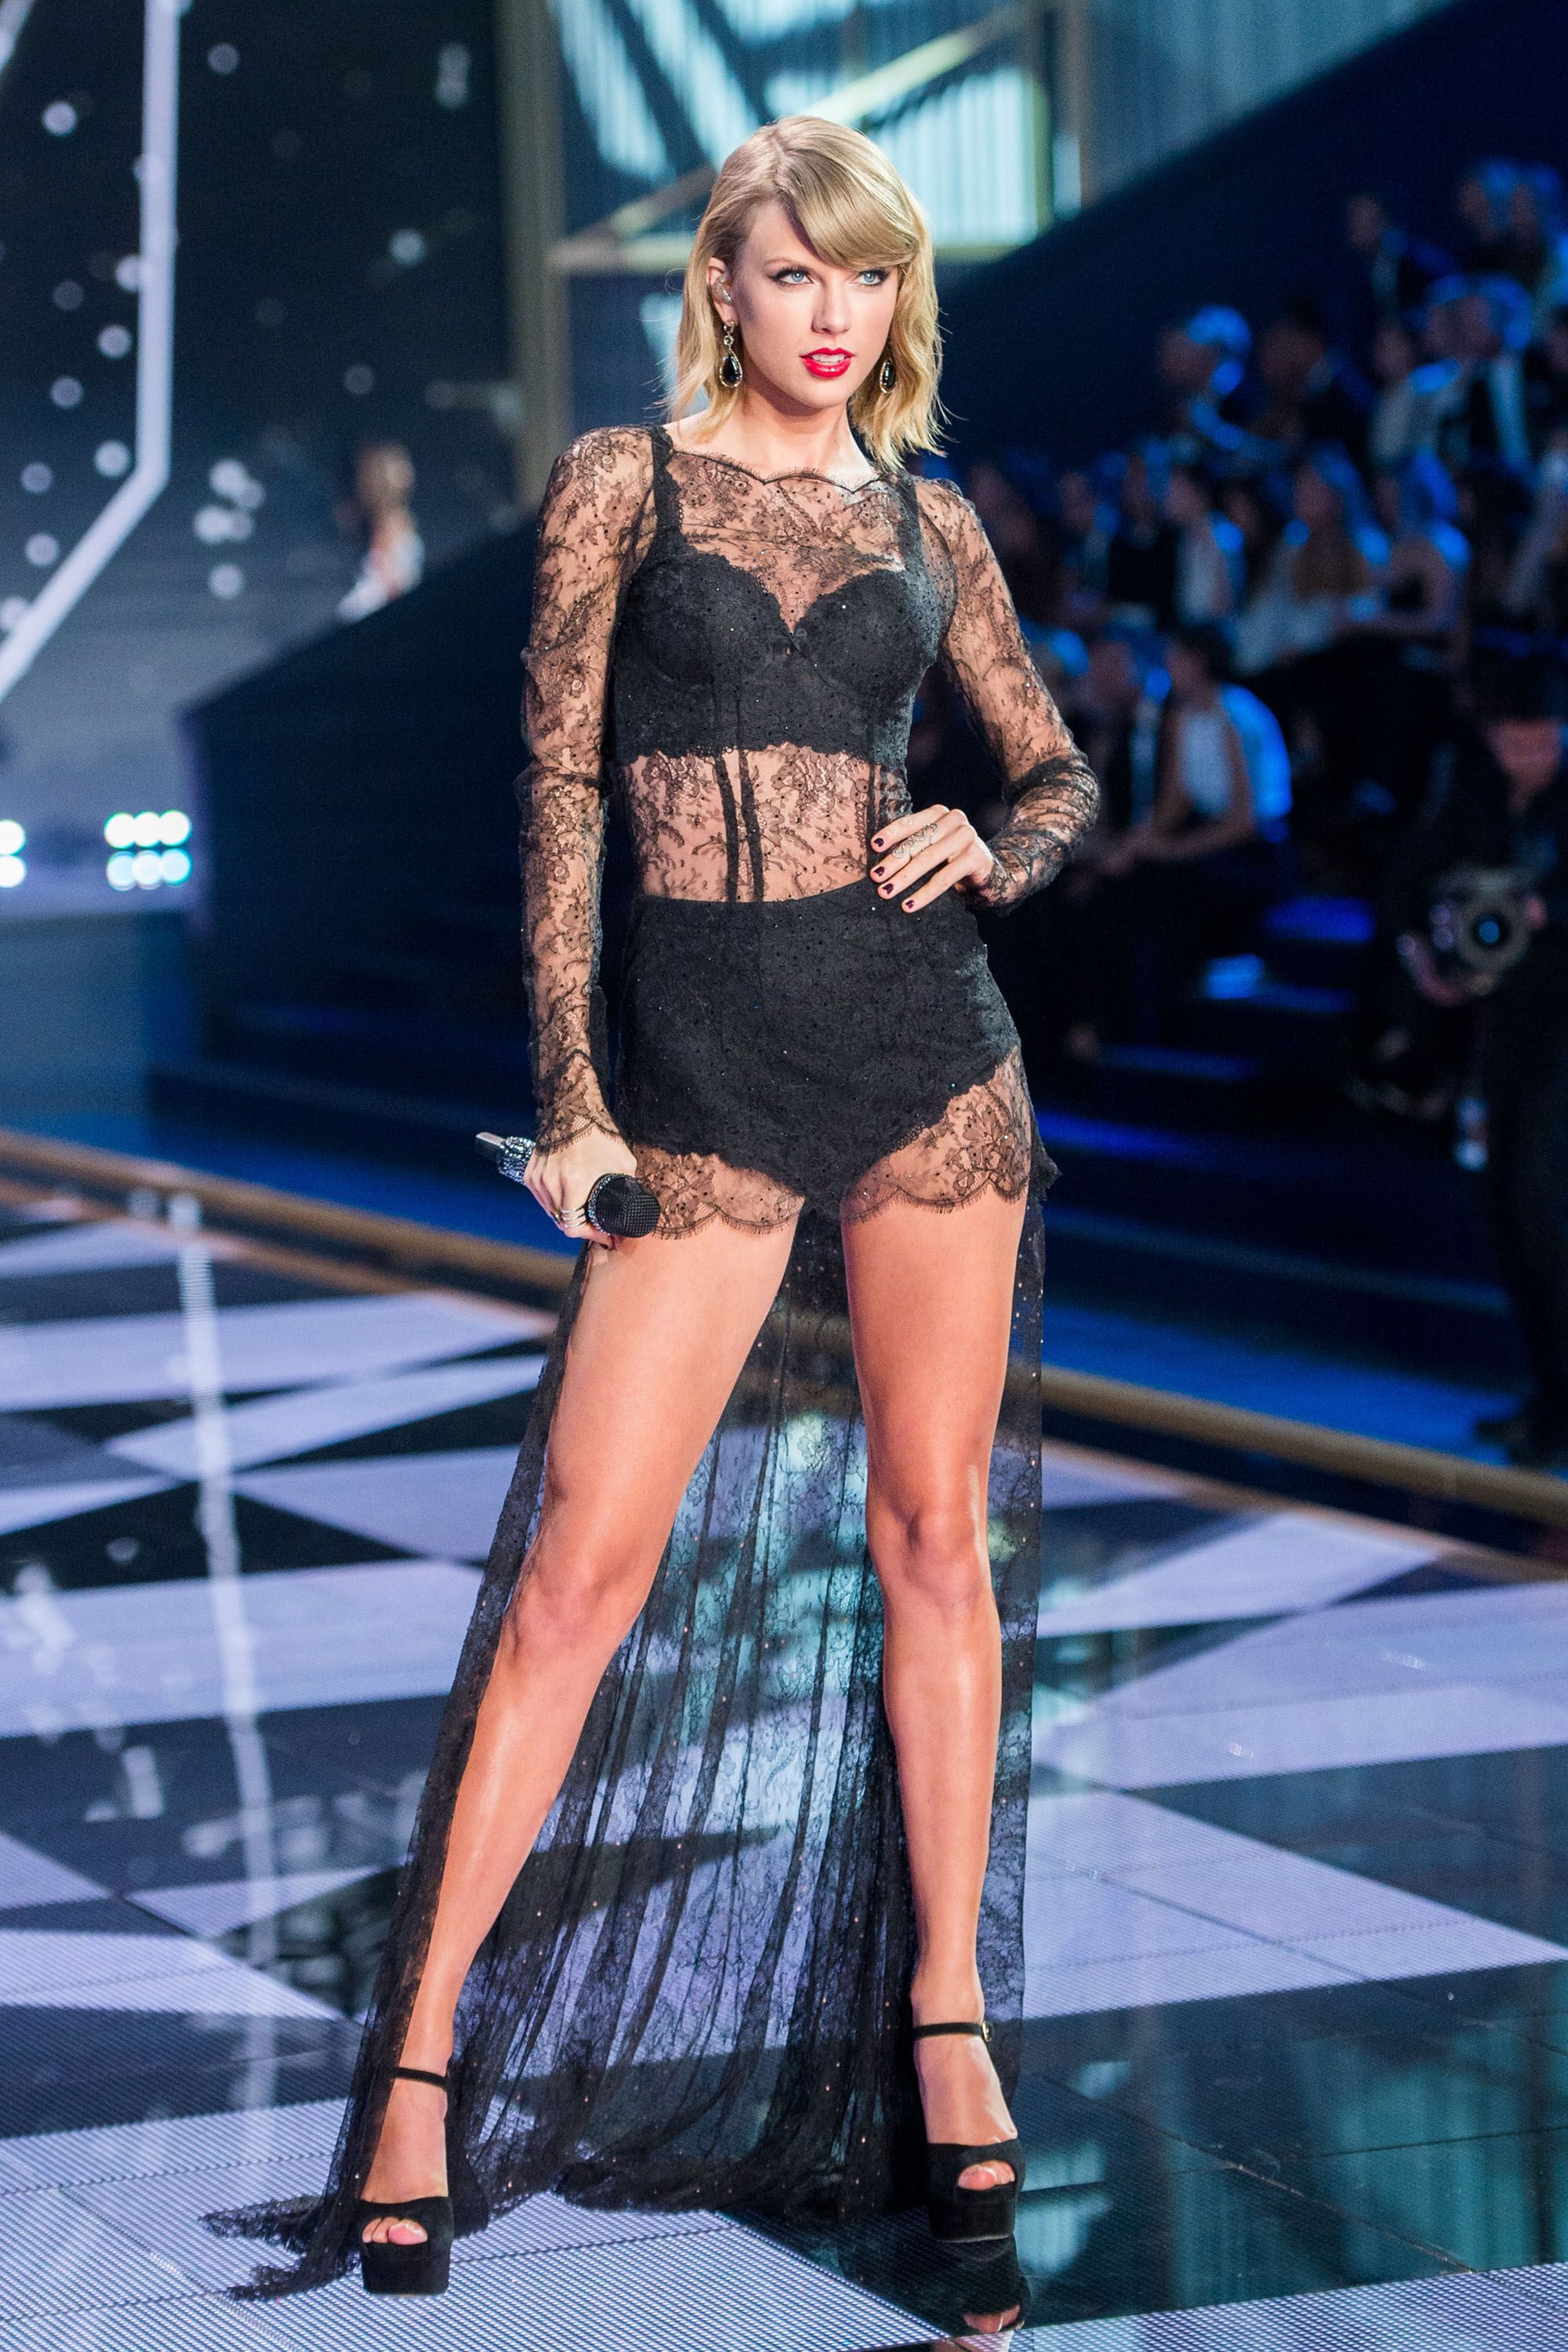 15 Celebrities Who Have Walked The Runway 15 Celebrities Who Have Walked The Runway new images